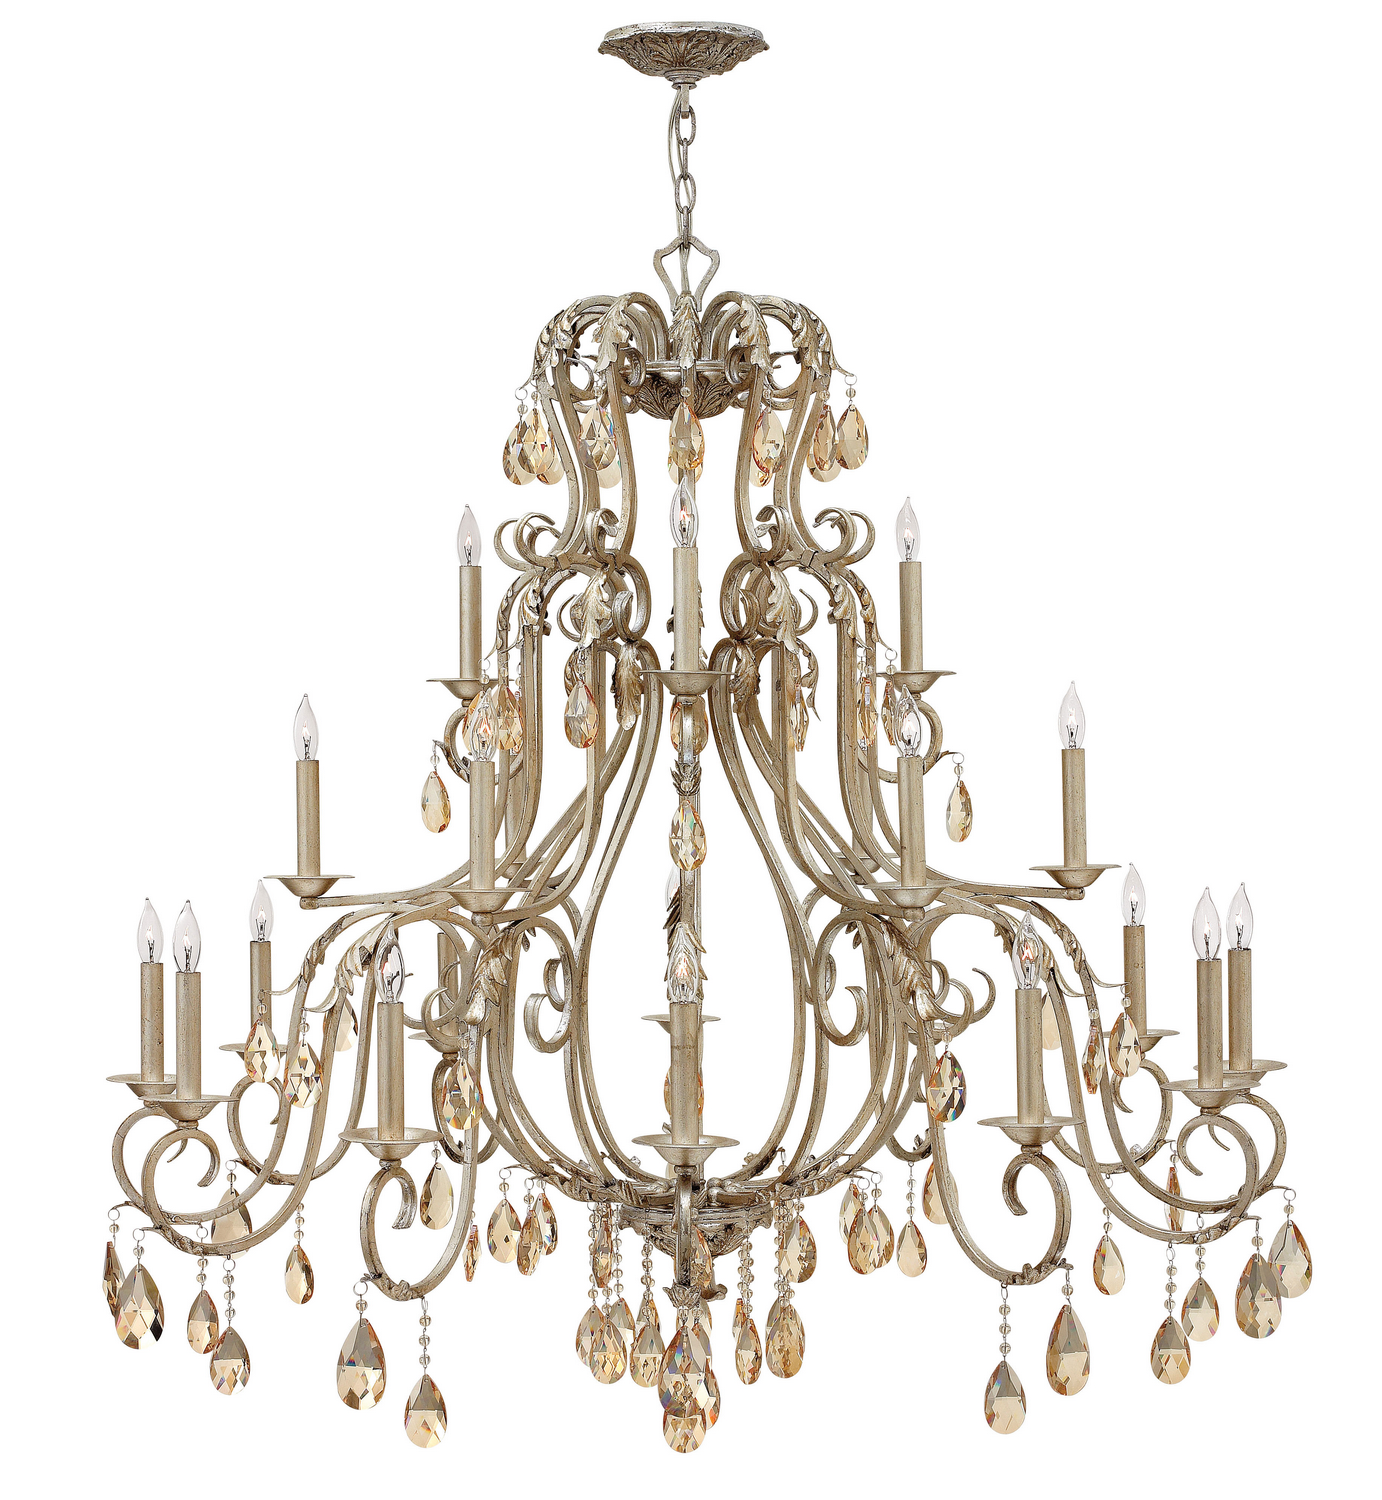 21 Light Foyer Pendant from the Carlton collection by Hinkley 4779SL